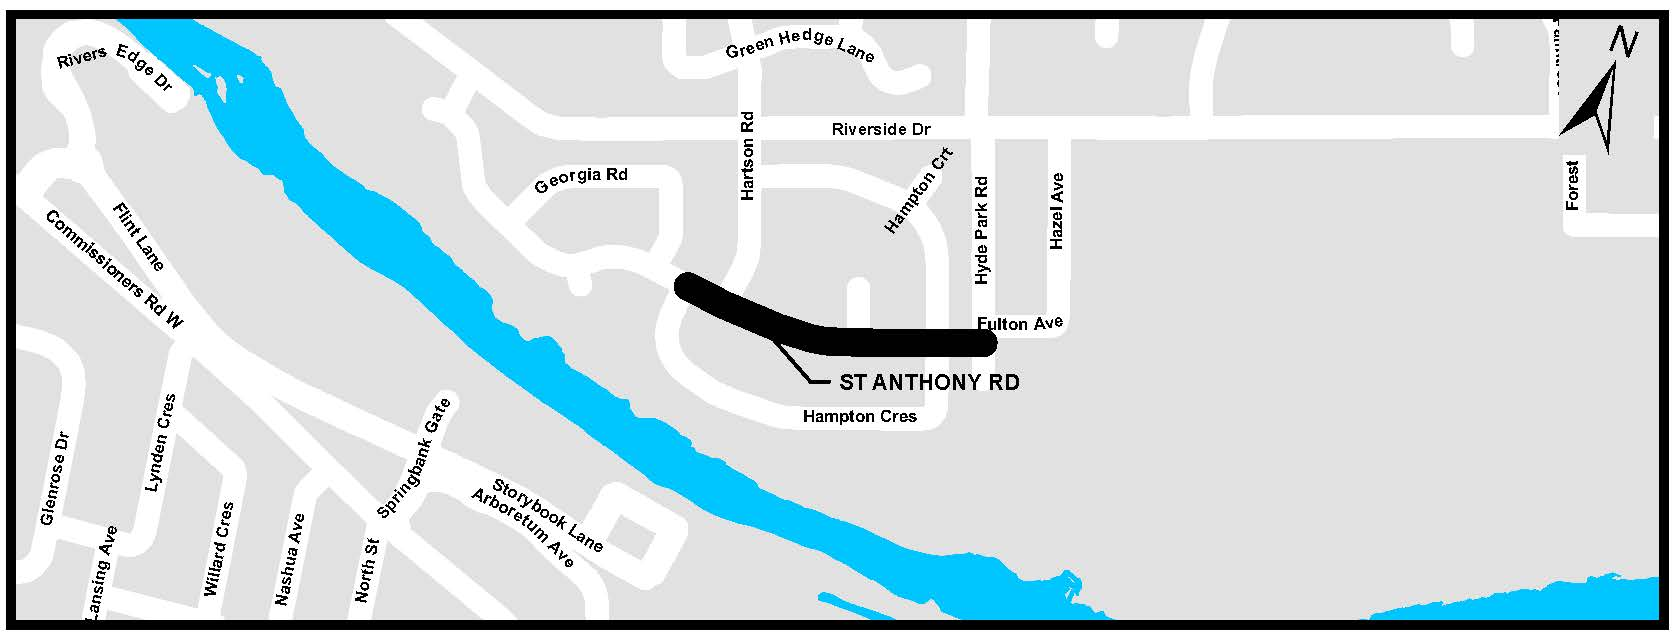 A map of St. Anthony Road. For more information, assistance, or to ask questions, please contact Kyle Fairhurst at kfairhur@london.ca